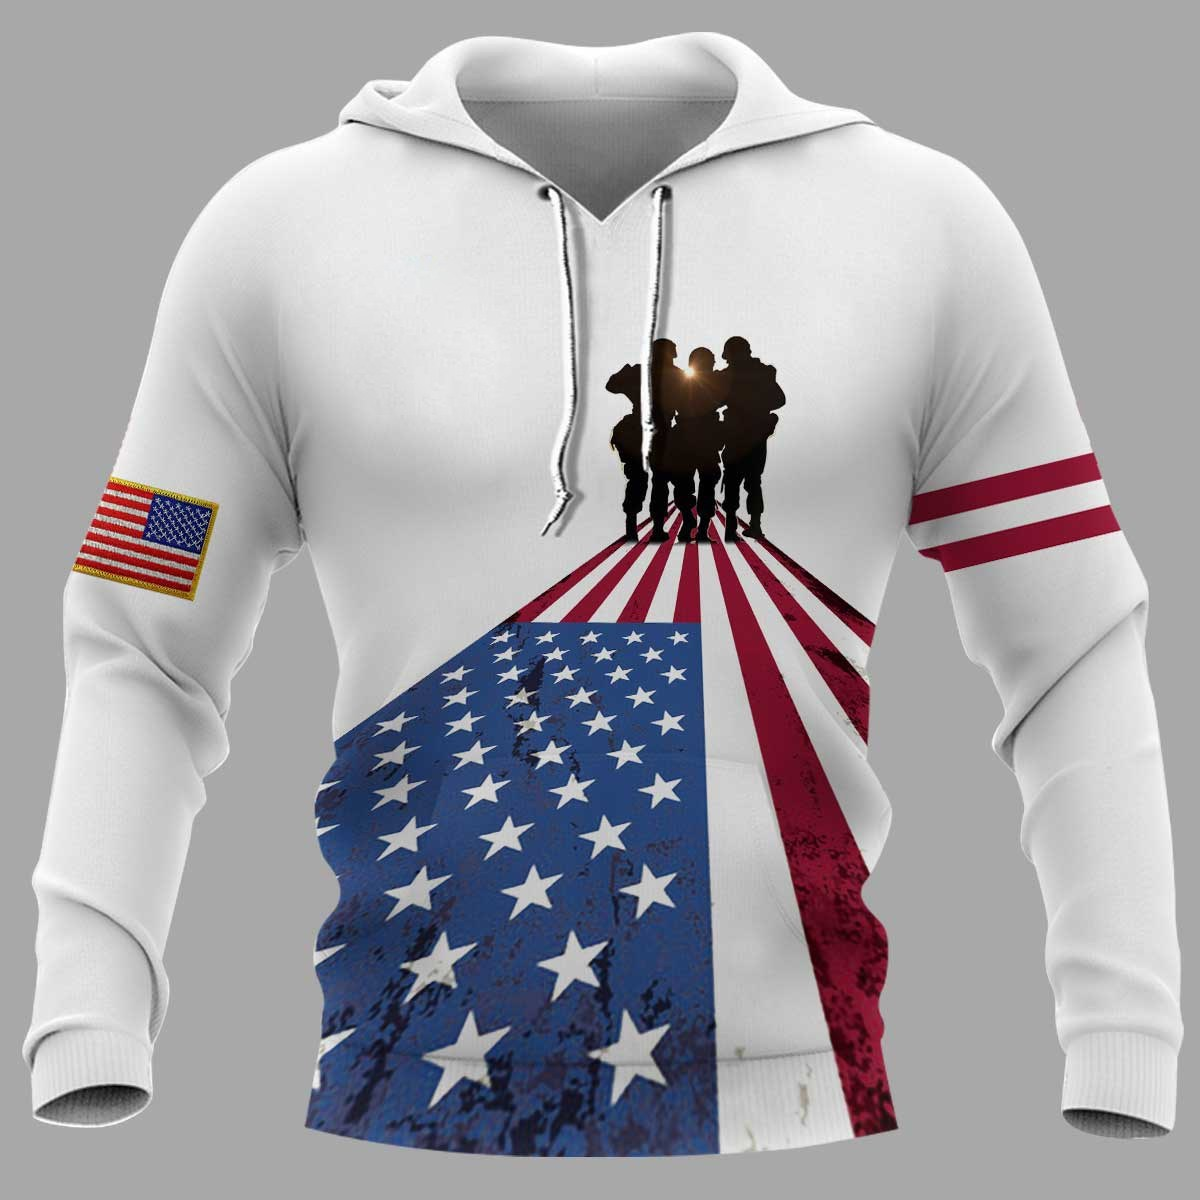 I took a dna test god is my father veterans are my brothers all over print hoodie